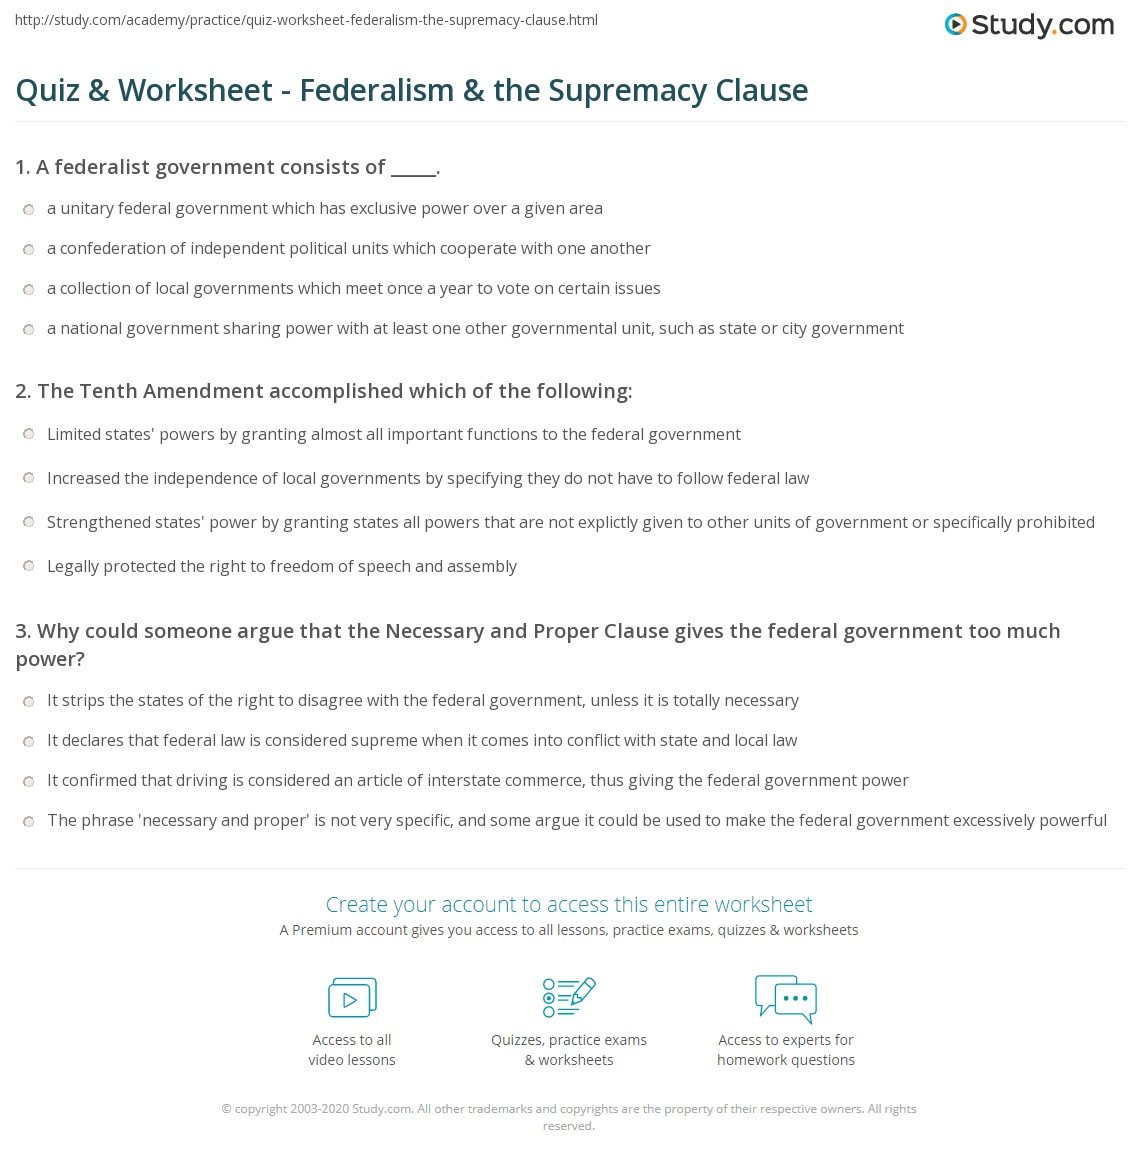 Quiz Worksheet Federalism The Supremacy Clause Study Com